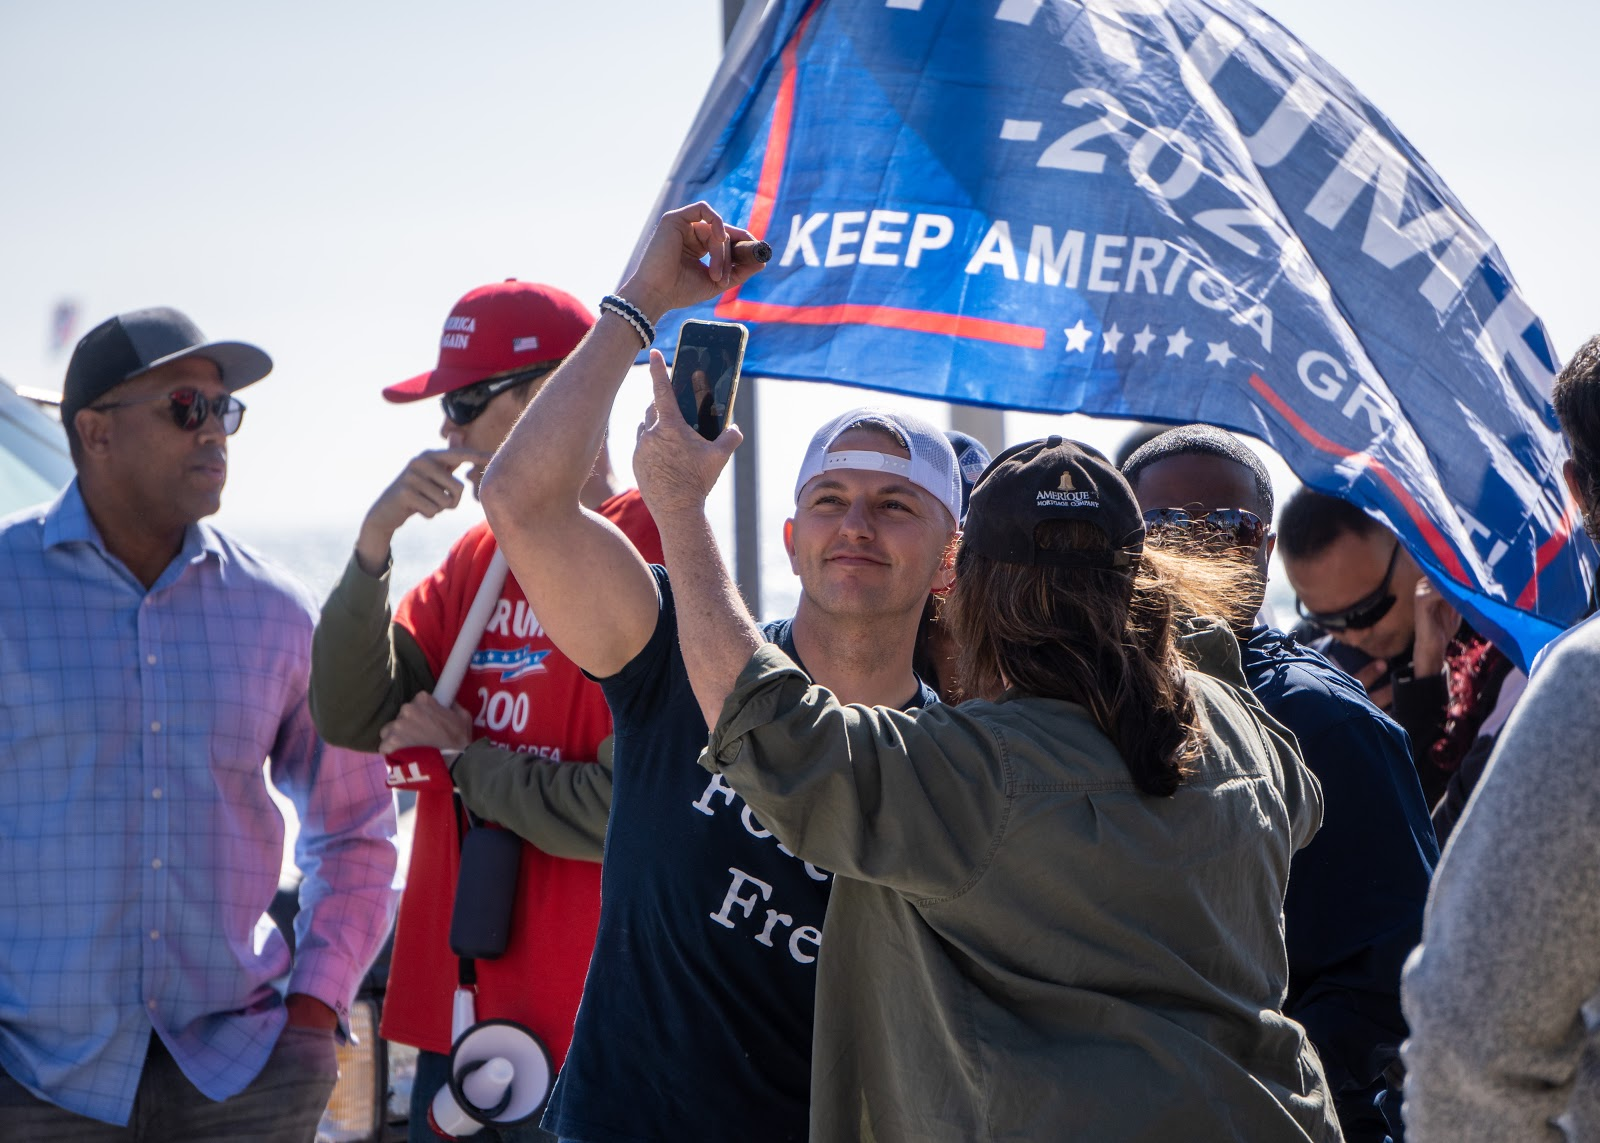 Cordie Williams poses for a video and a photo with an attendee, rhythmically swaying to the generic dance drum break being played on loop after the two speakers finished up. A trump flag flows in the breeze above his head, held by a man in a separate conversation in the background.